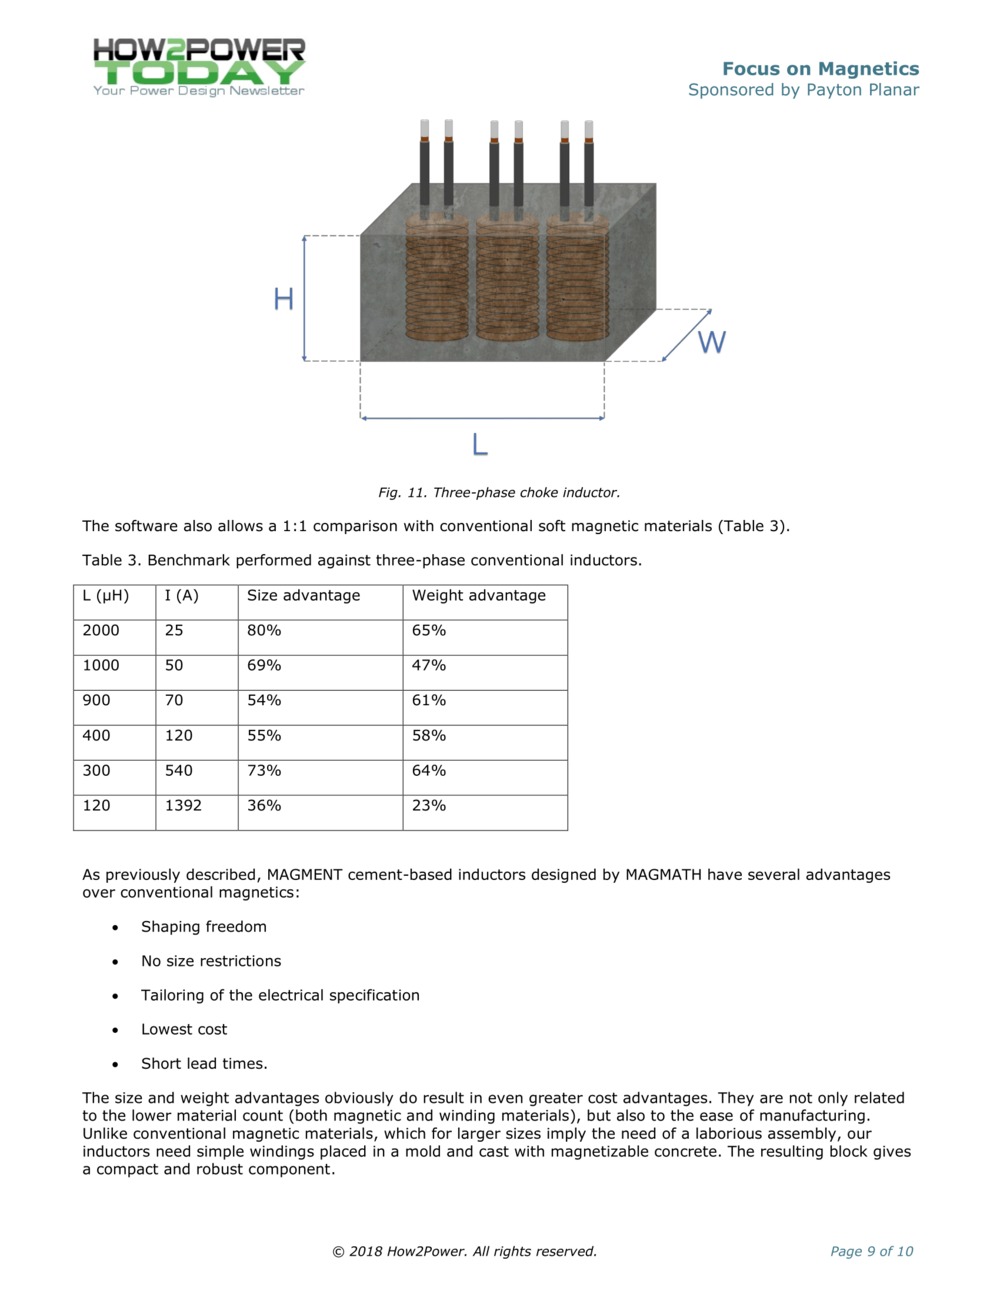 H2PowerToday1804_FocusOnMagnetics-09.png